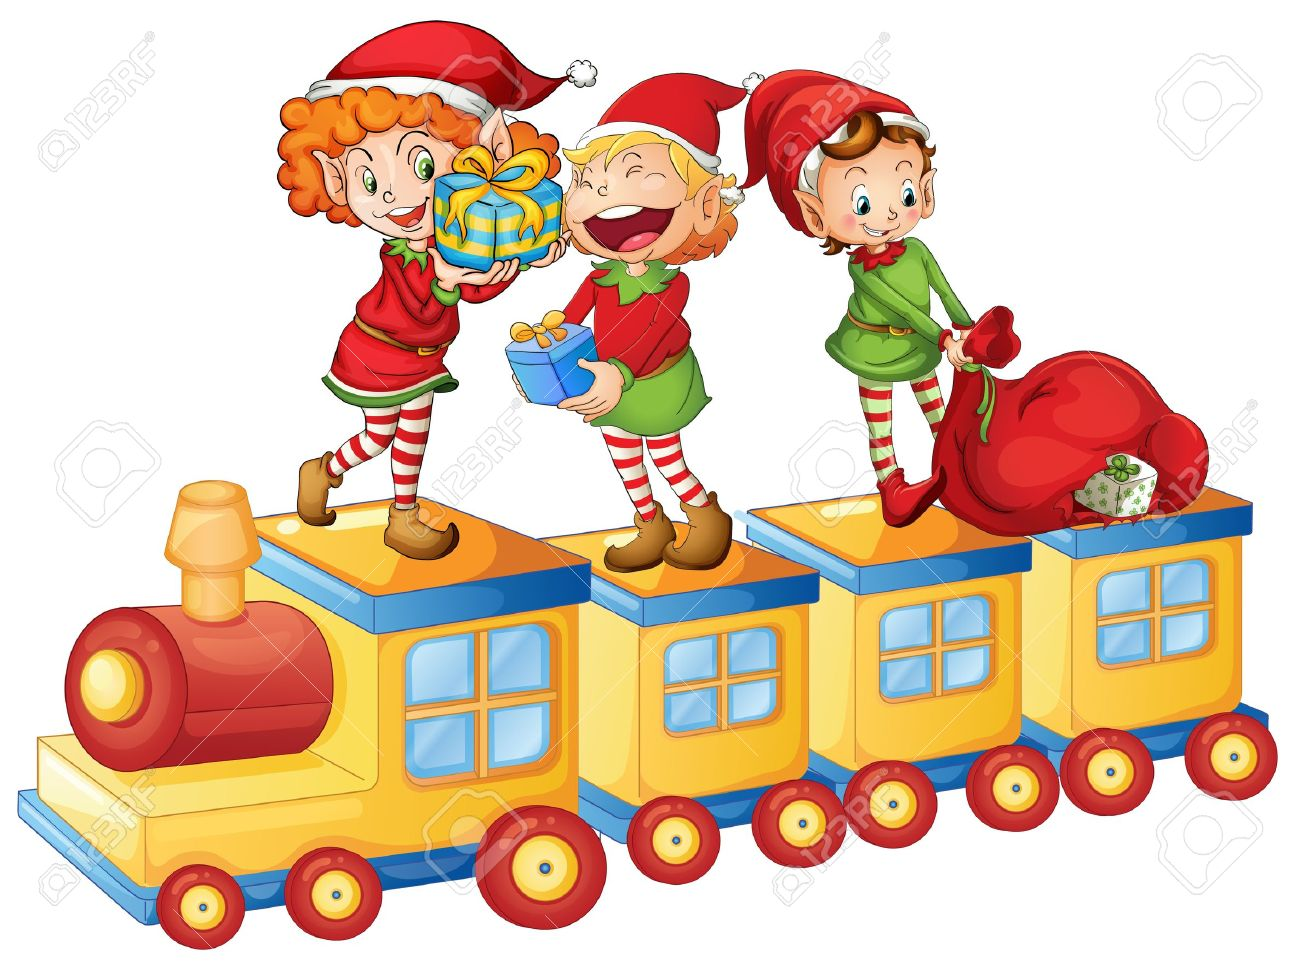 1300x968 Christmas Toy Train Clip Art About Christmas